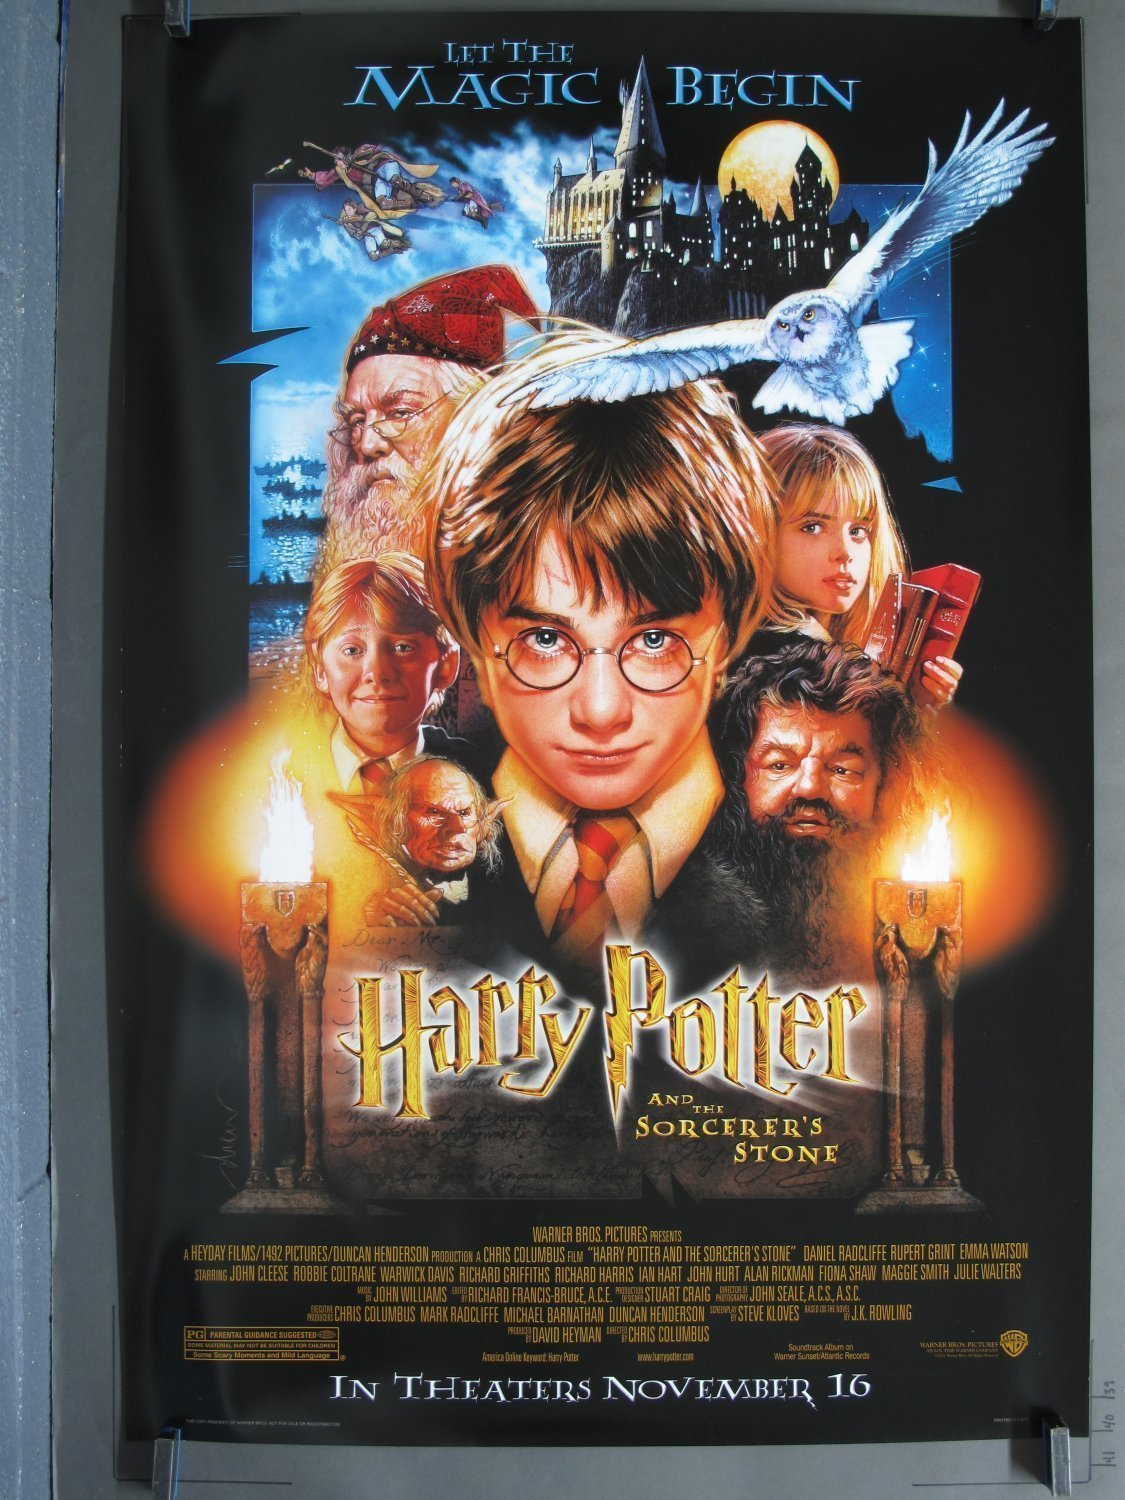 Harry Potter And The Sorcerers Stone 2001 Ds Advance One Sheet Poster